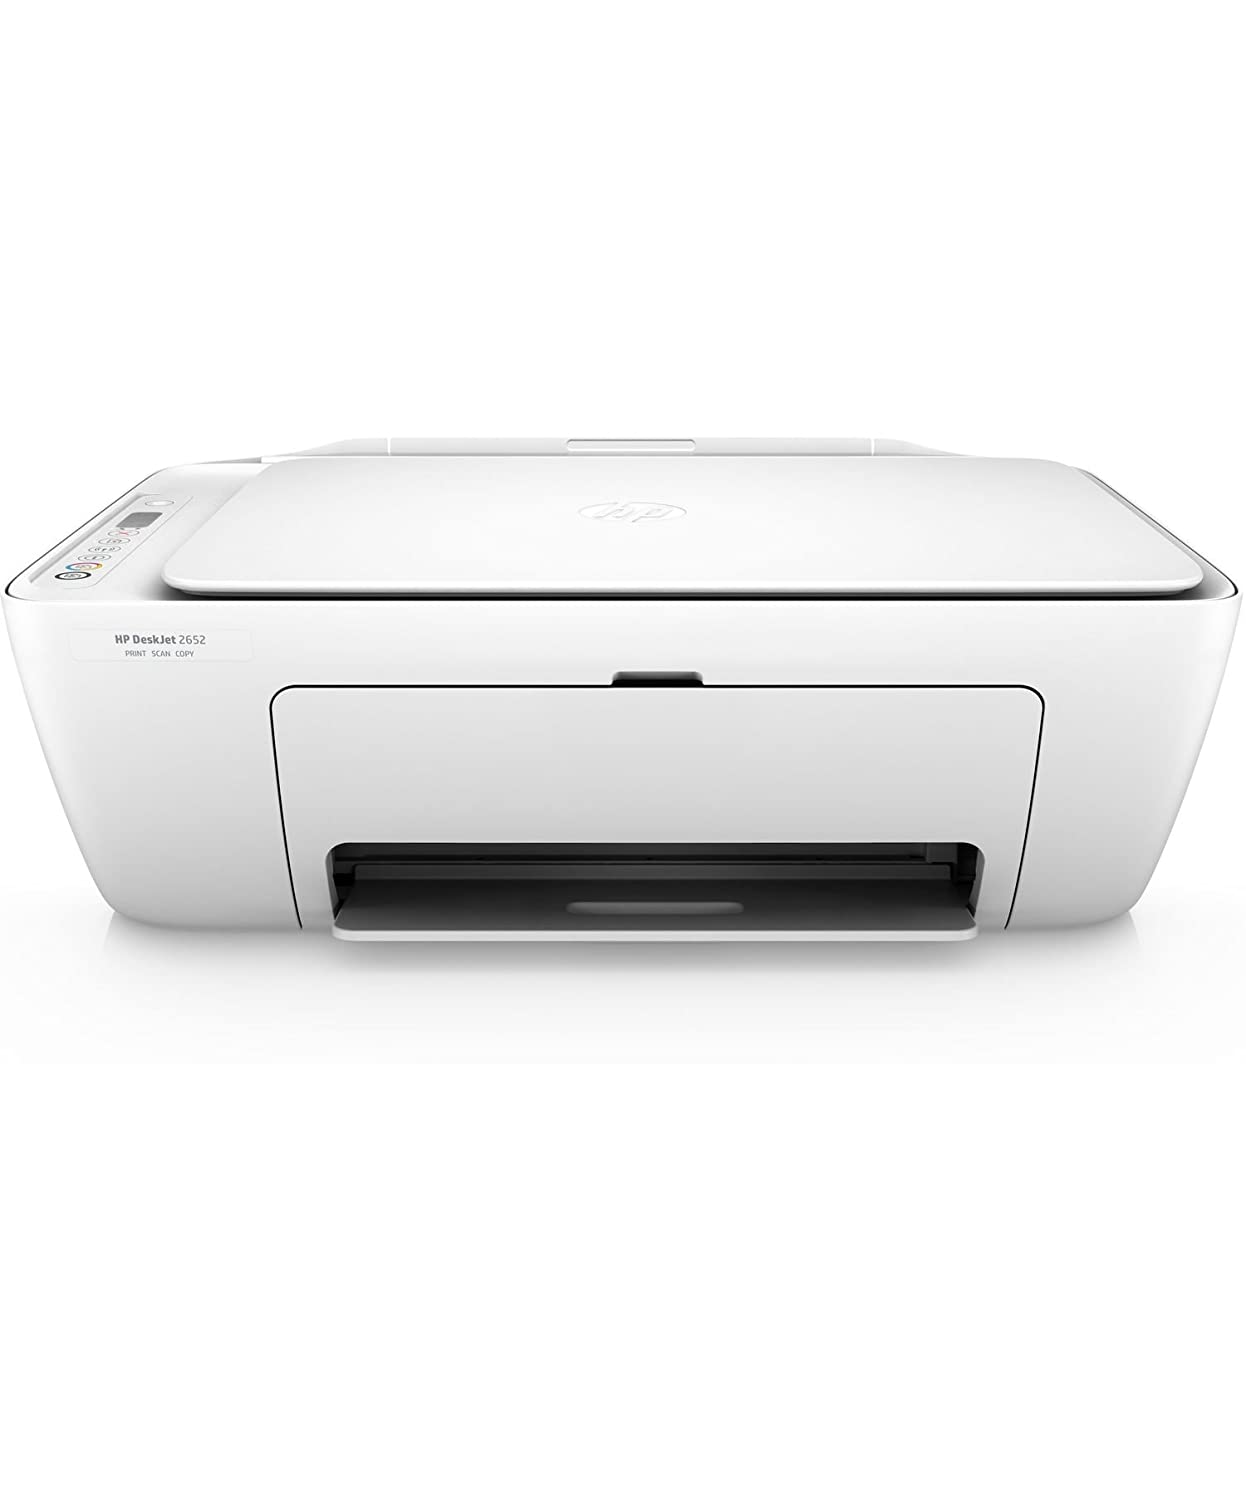 HP DeskJet 2652 All-in-One Printer in White (Certified Refurbished)